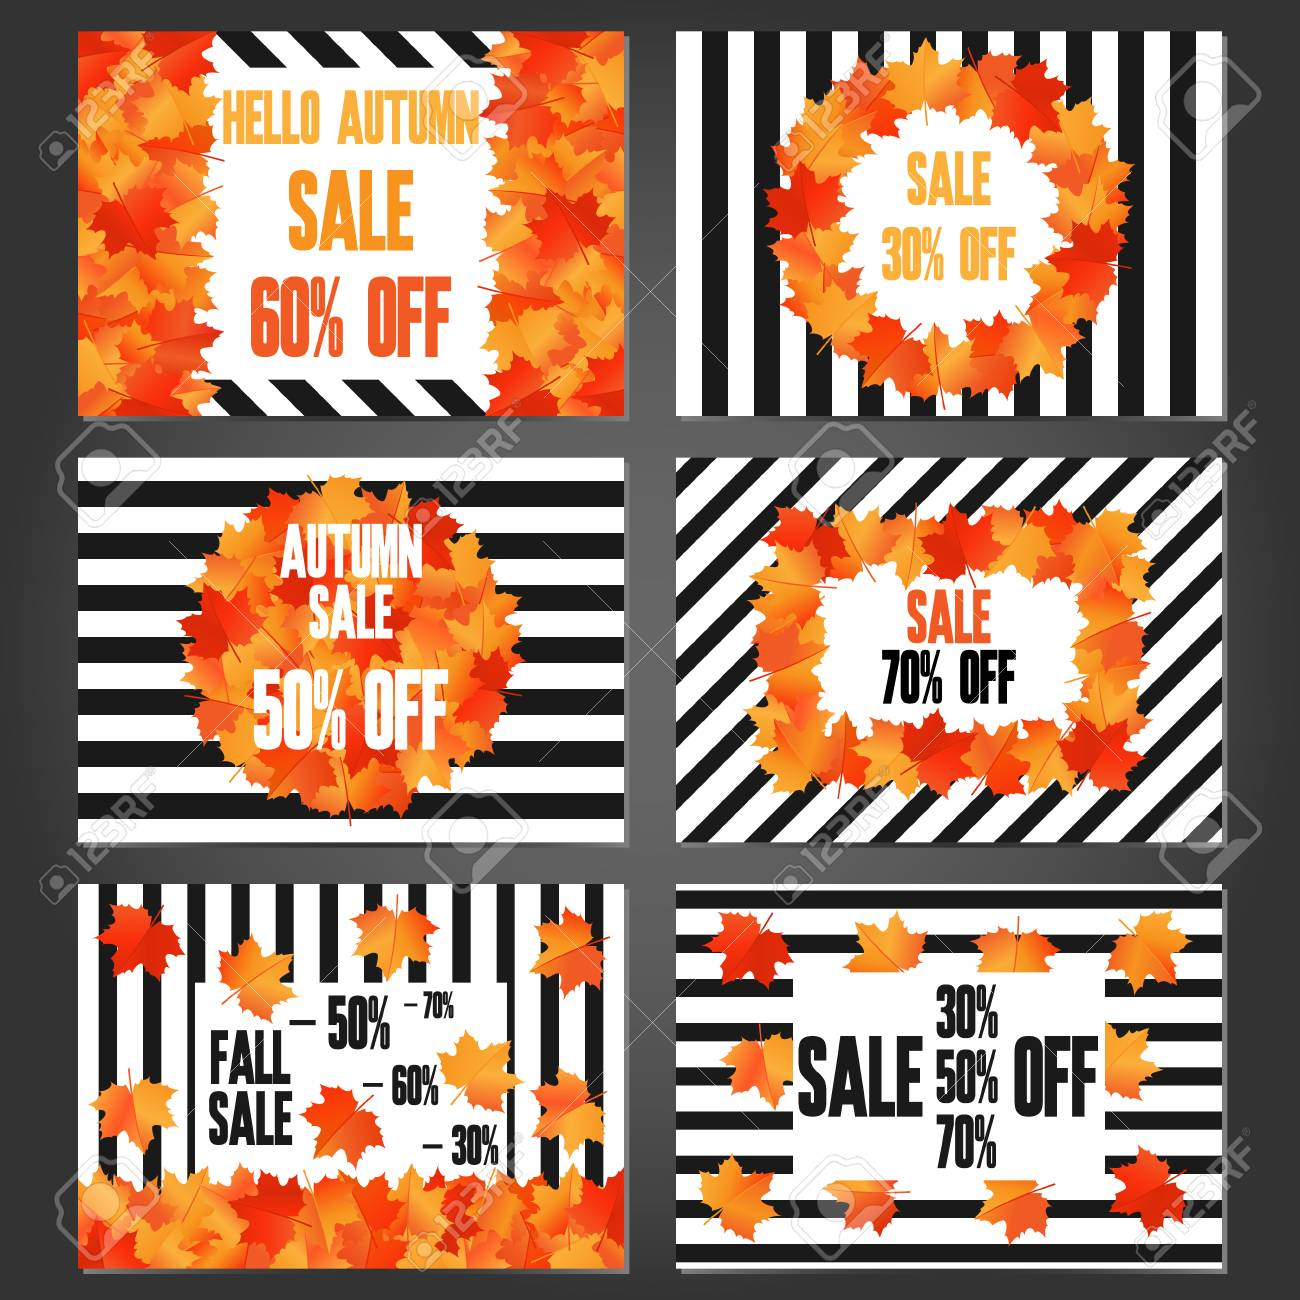 Set Of Autumn Sale Banners And Promotional Flyer Templates